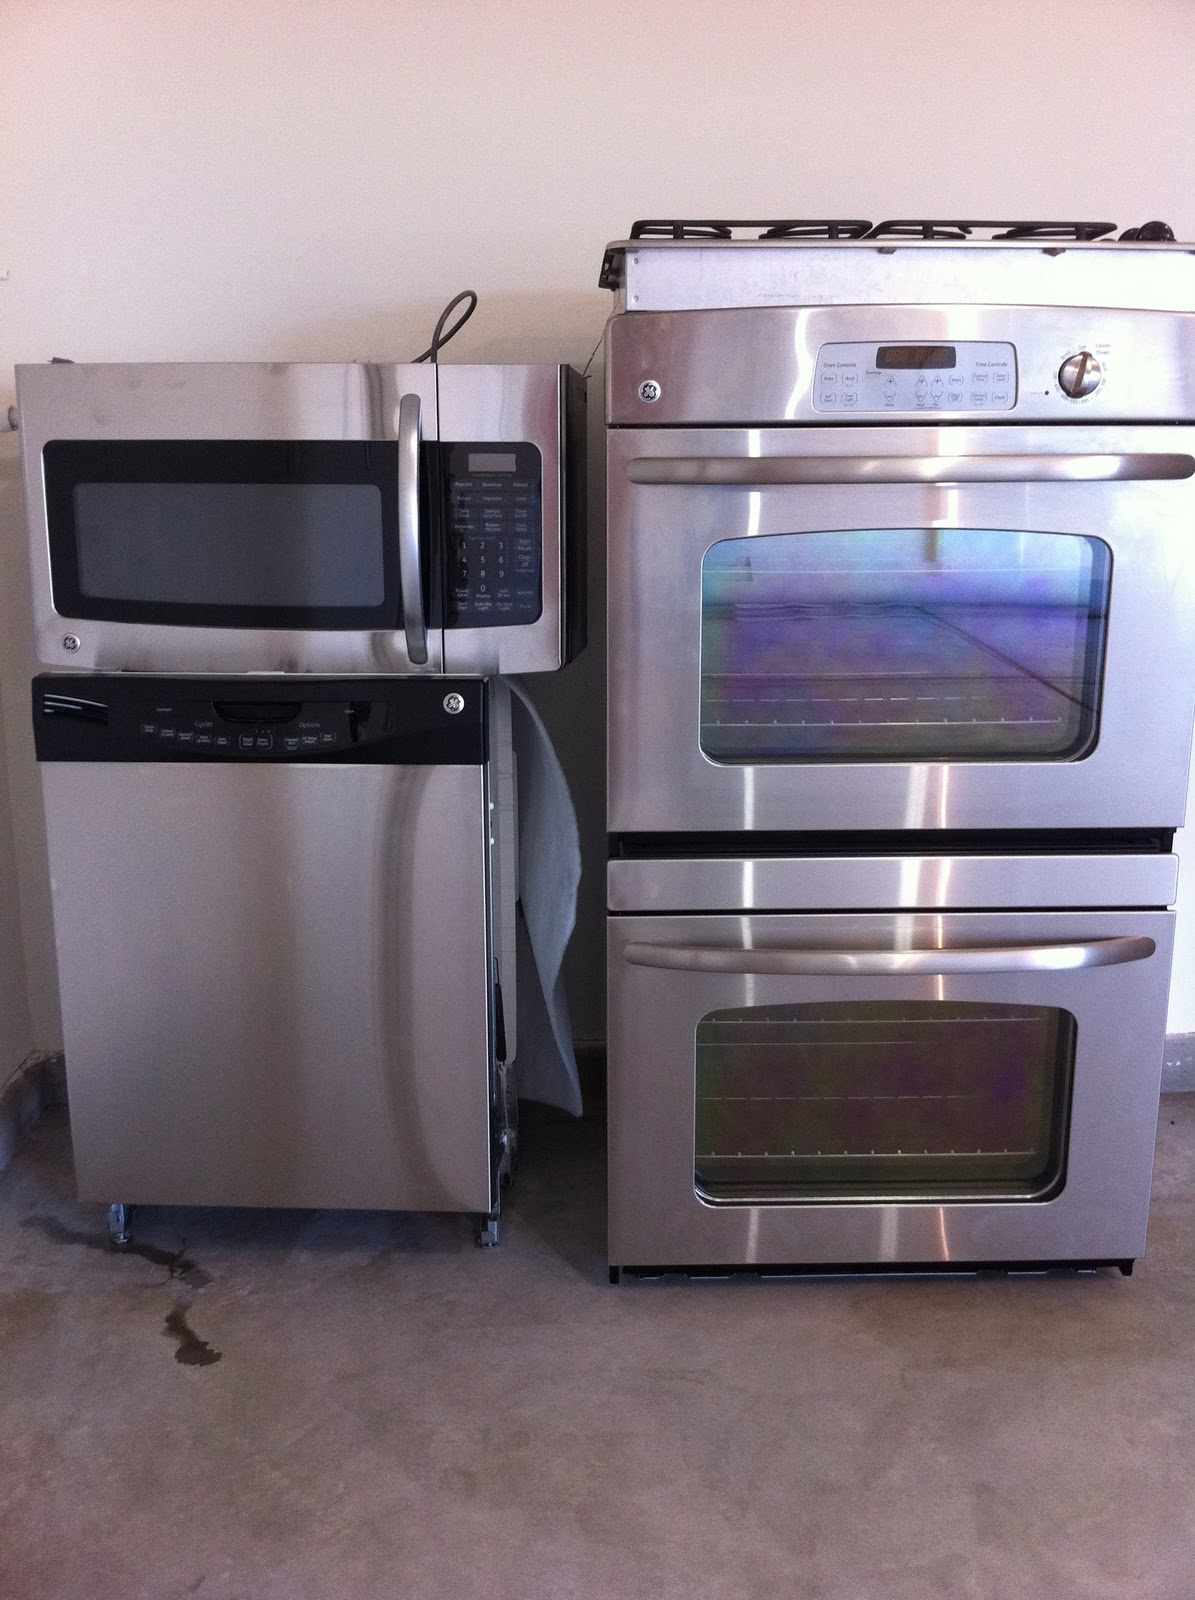 Appliance Craigslist Atlanta Appliances